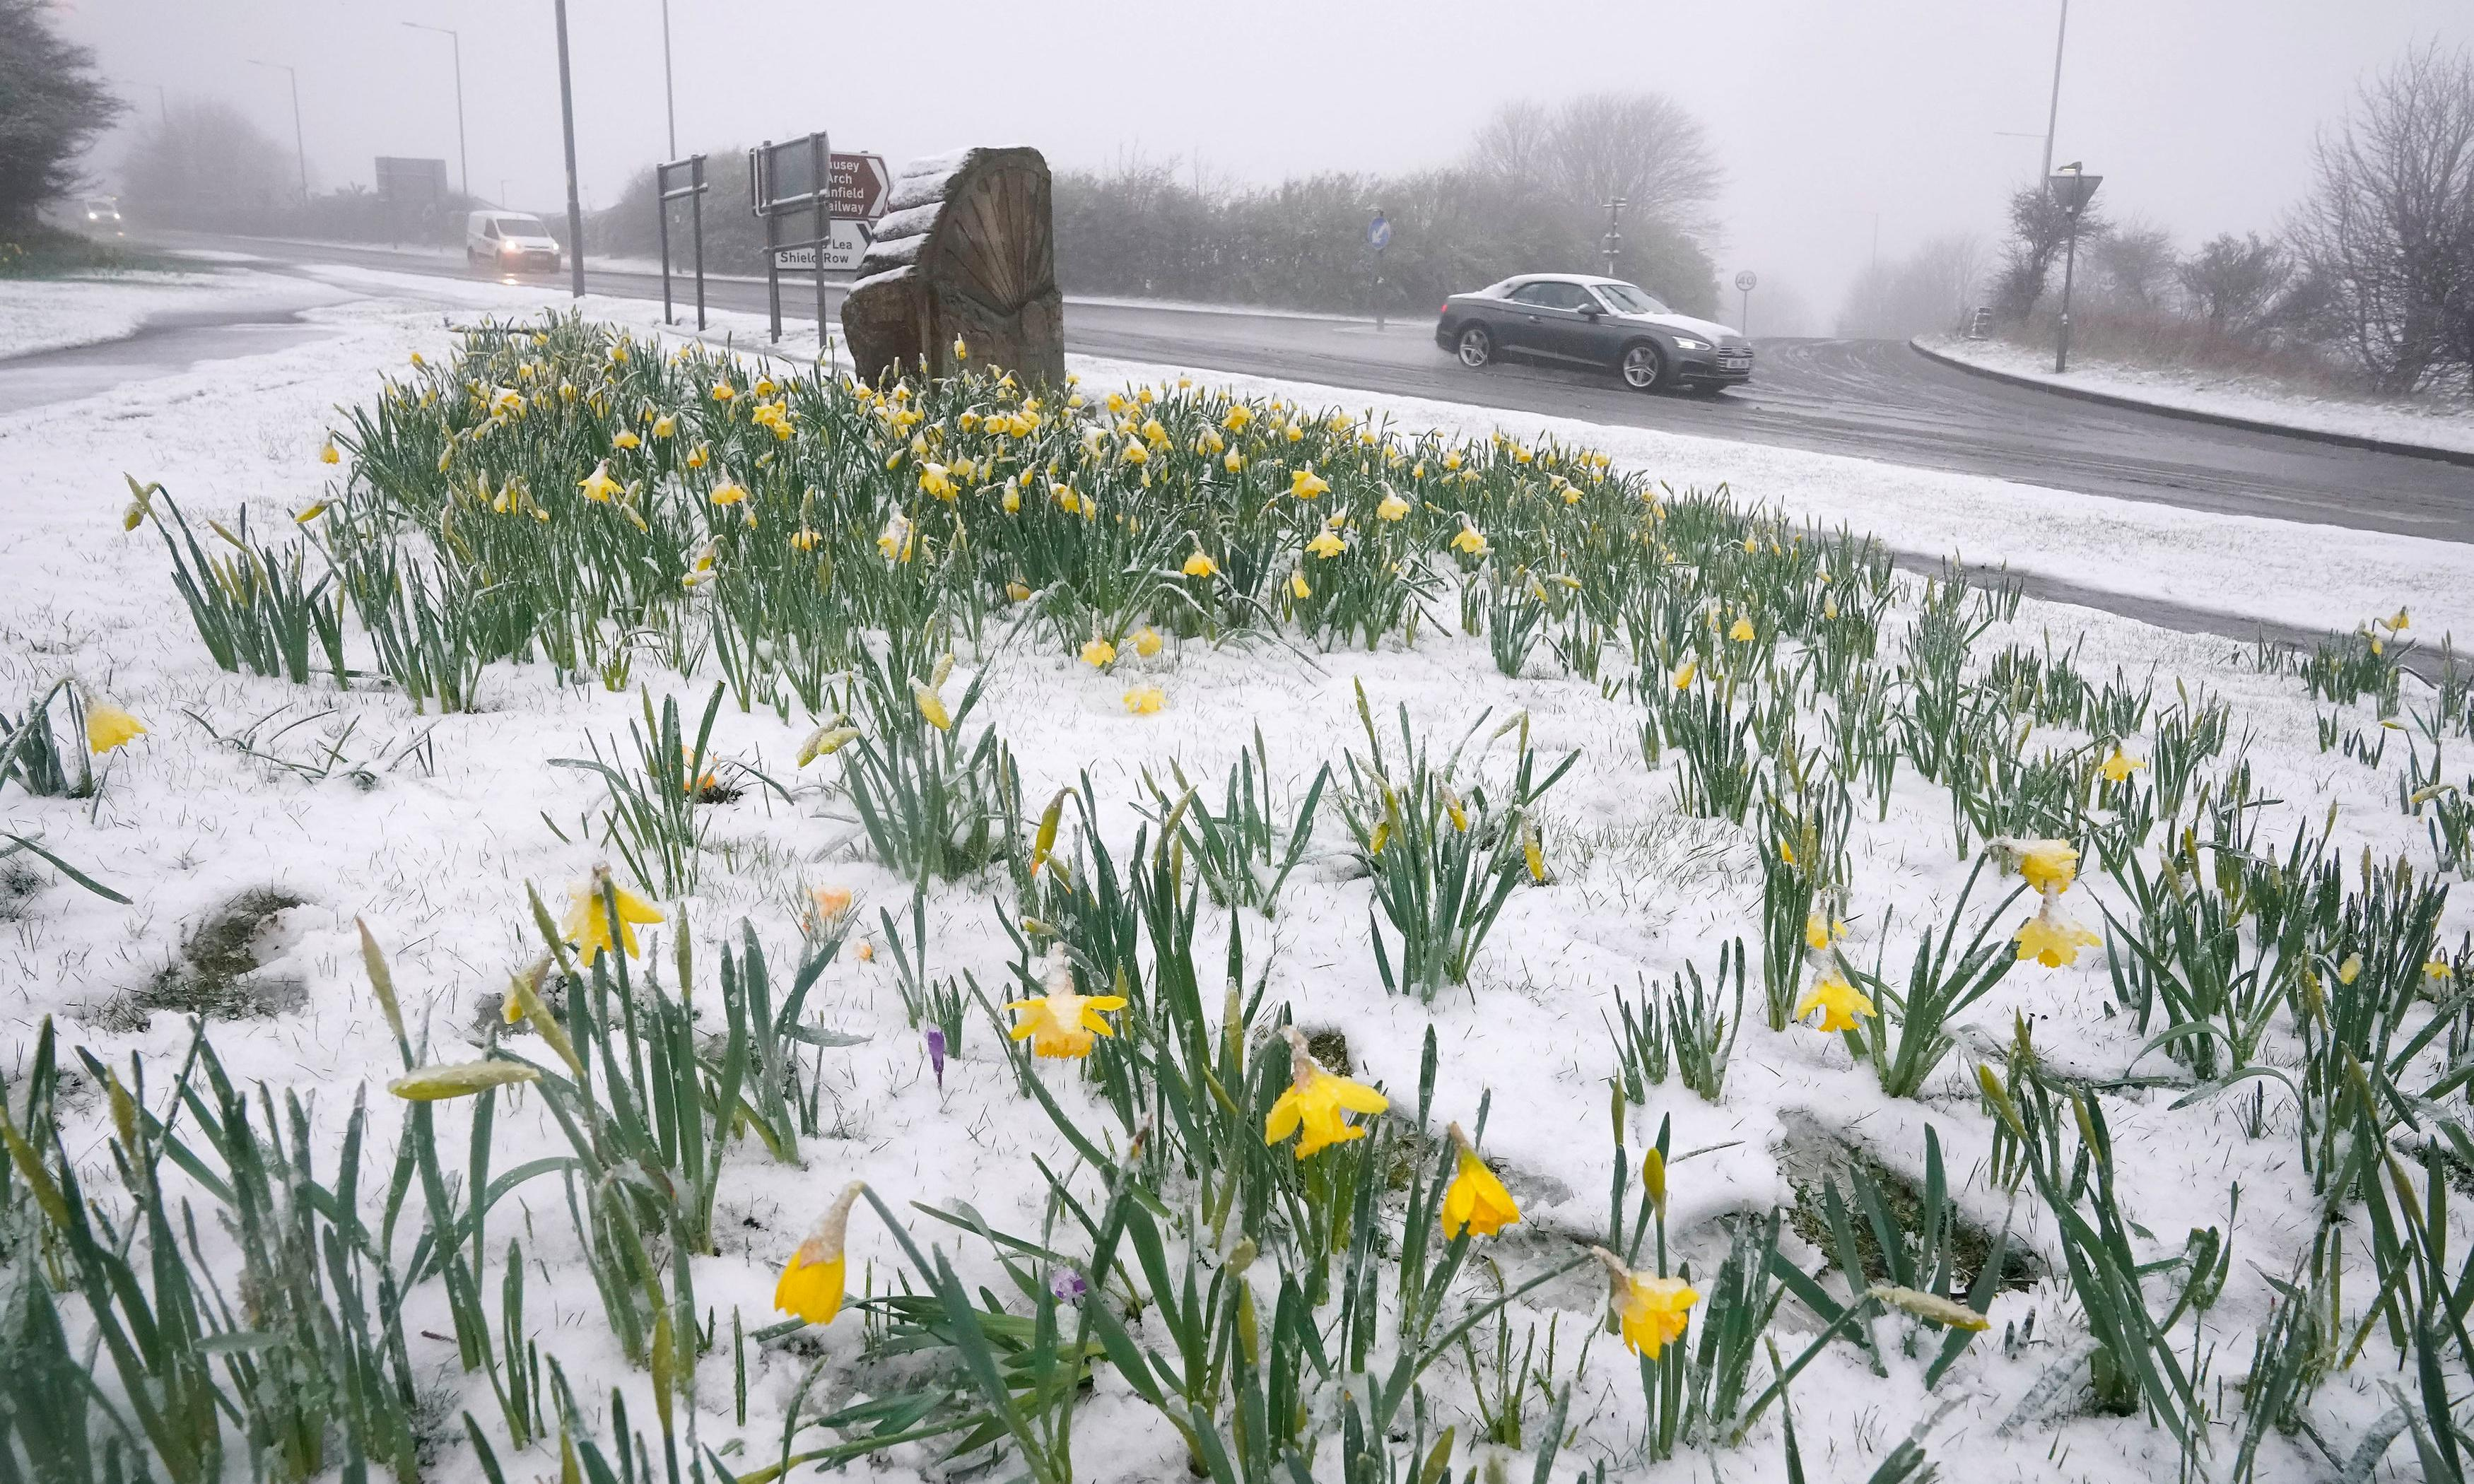 UK weather: wintry conditions forecast for much of country